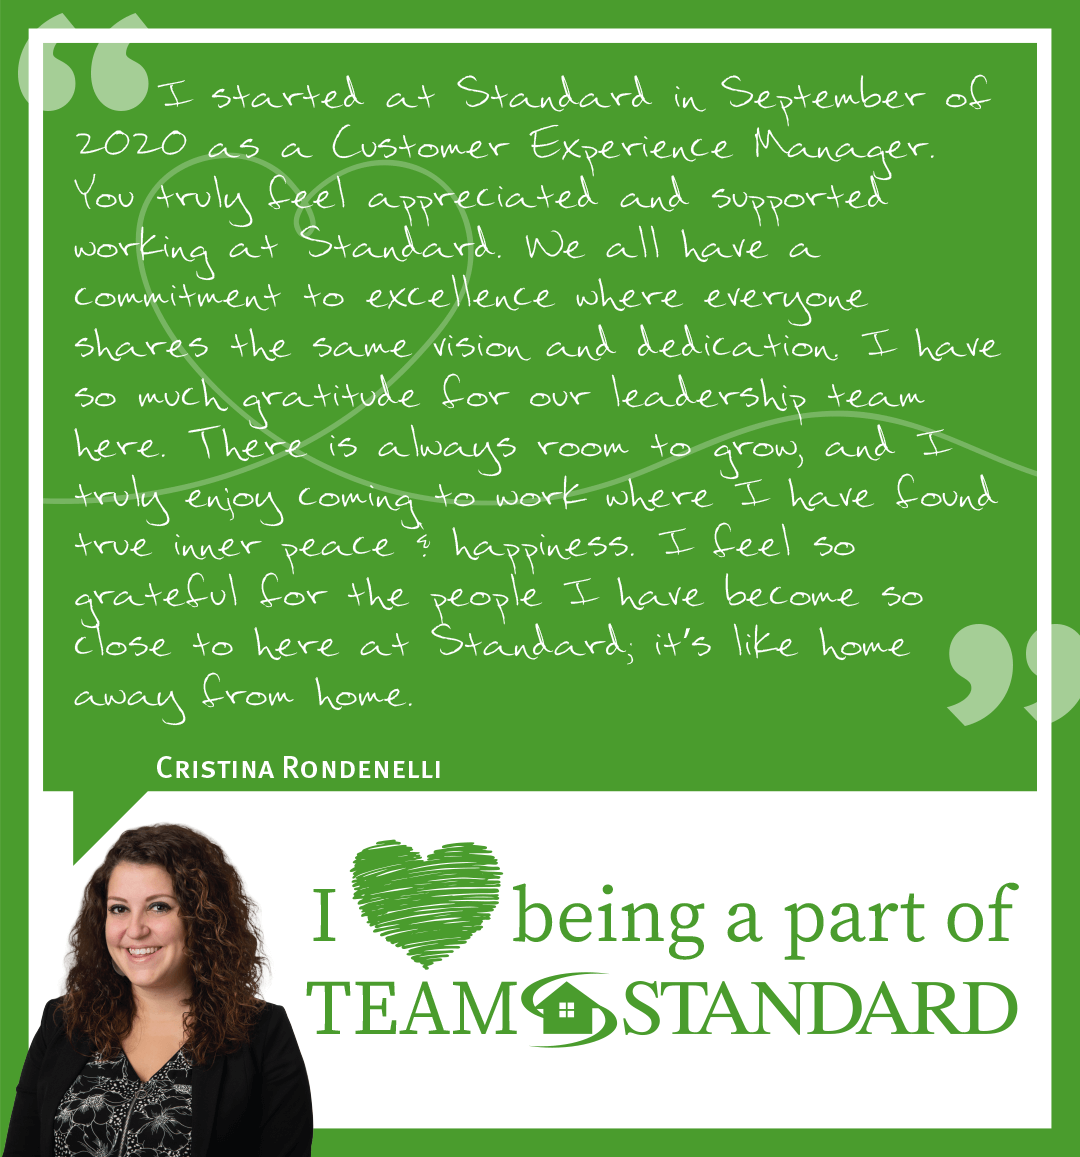 """Team member testimonial from Cristina Rondenelli that reads, """"I started at Standard in September of 2020 as a Customer Experience Manager. You truly feel appreciated and supported working at Standard. We all have a commitment to excellence where everyone shares the same vision and dedication. I have so much gratitude for our leadership team here. There is always room to grow, and I truly enjoy coming to work where I have found true inner peace & happiness. I feel so grateful for the people I have become so close to here at Standard, it's like home away from home."""